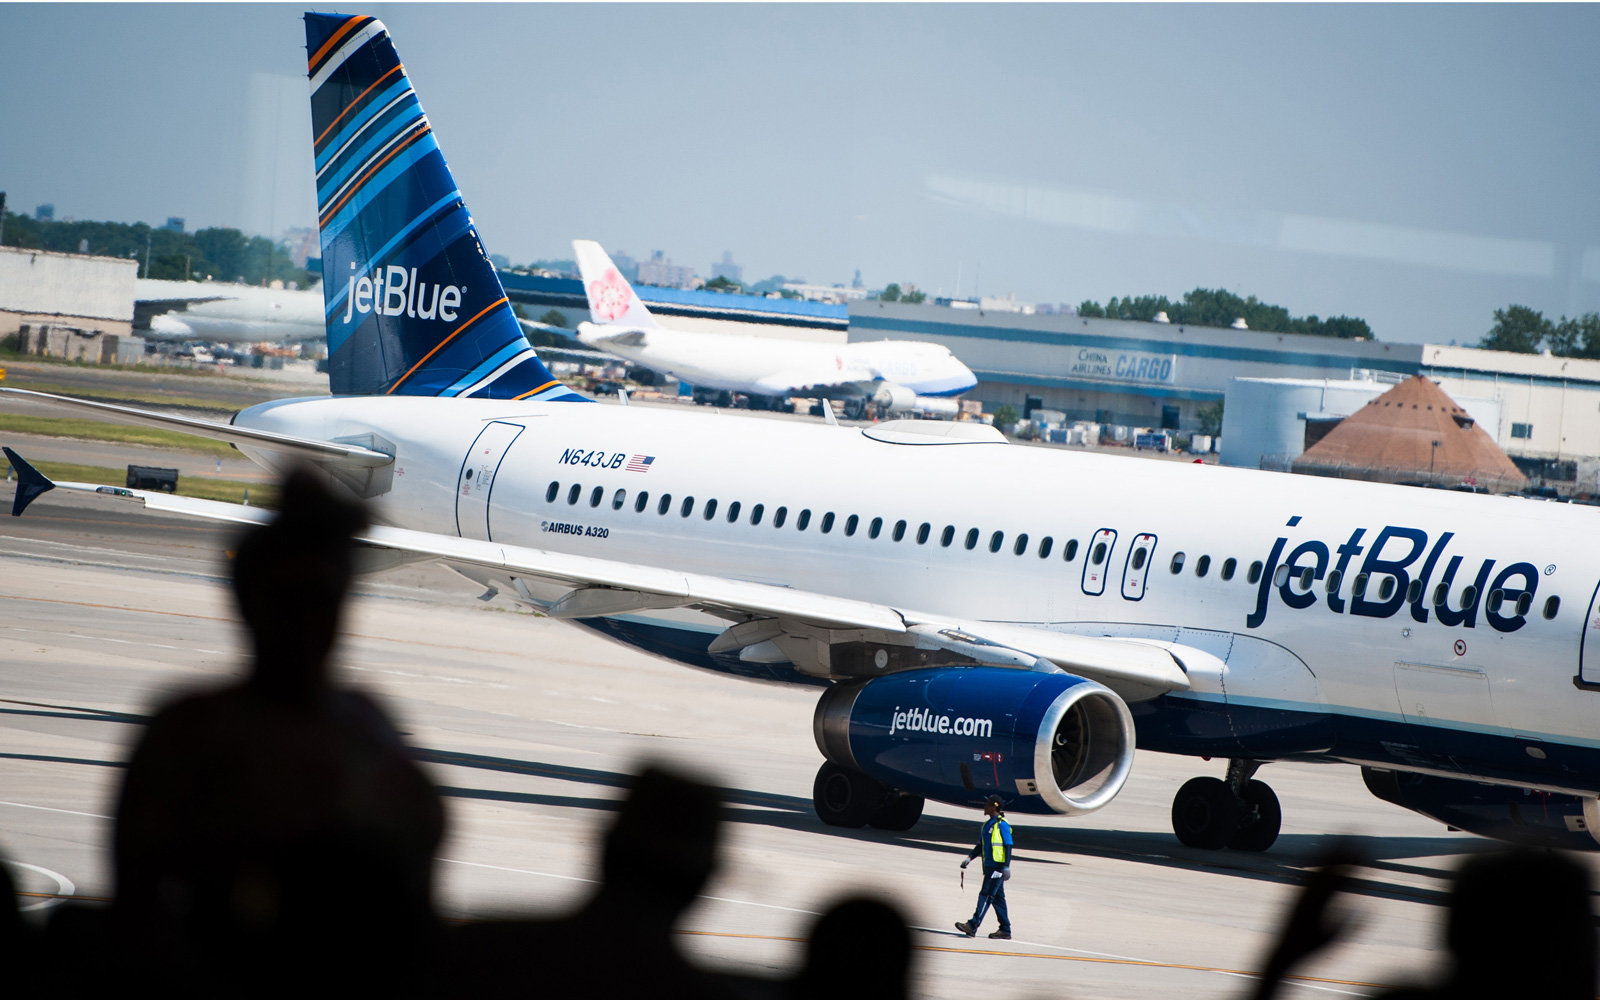 Passengers are suing JetBlue over a turbulence incident.